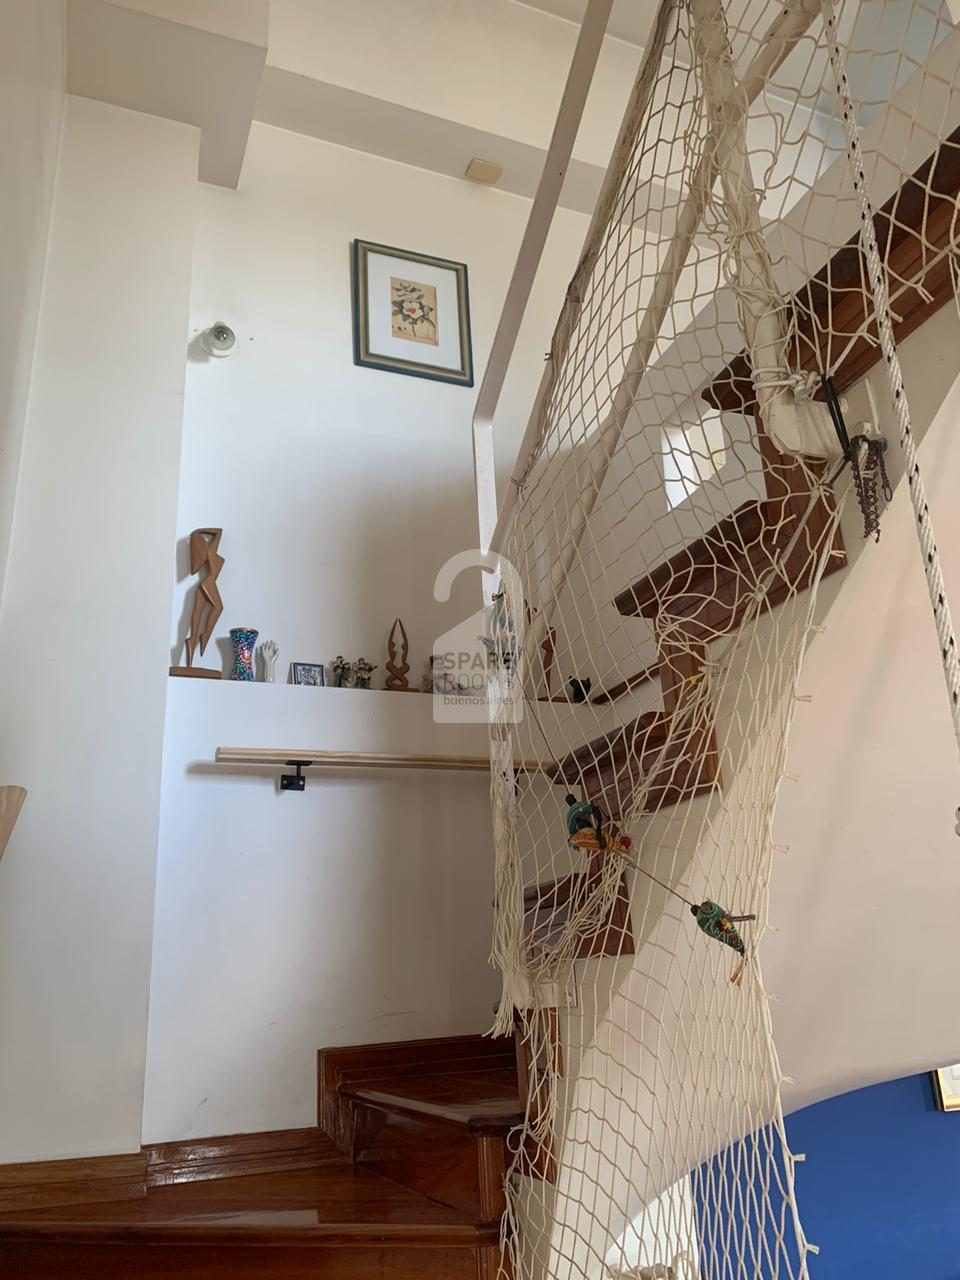 Stairs to the room